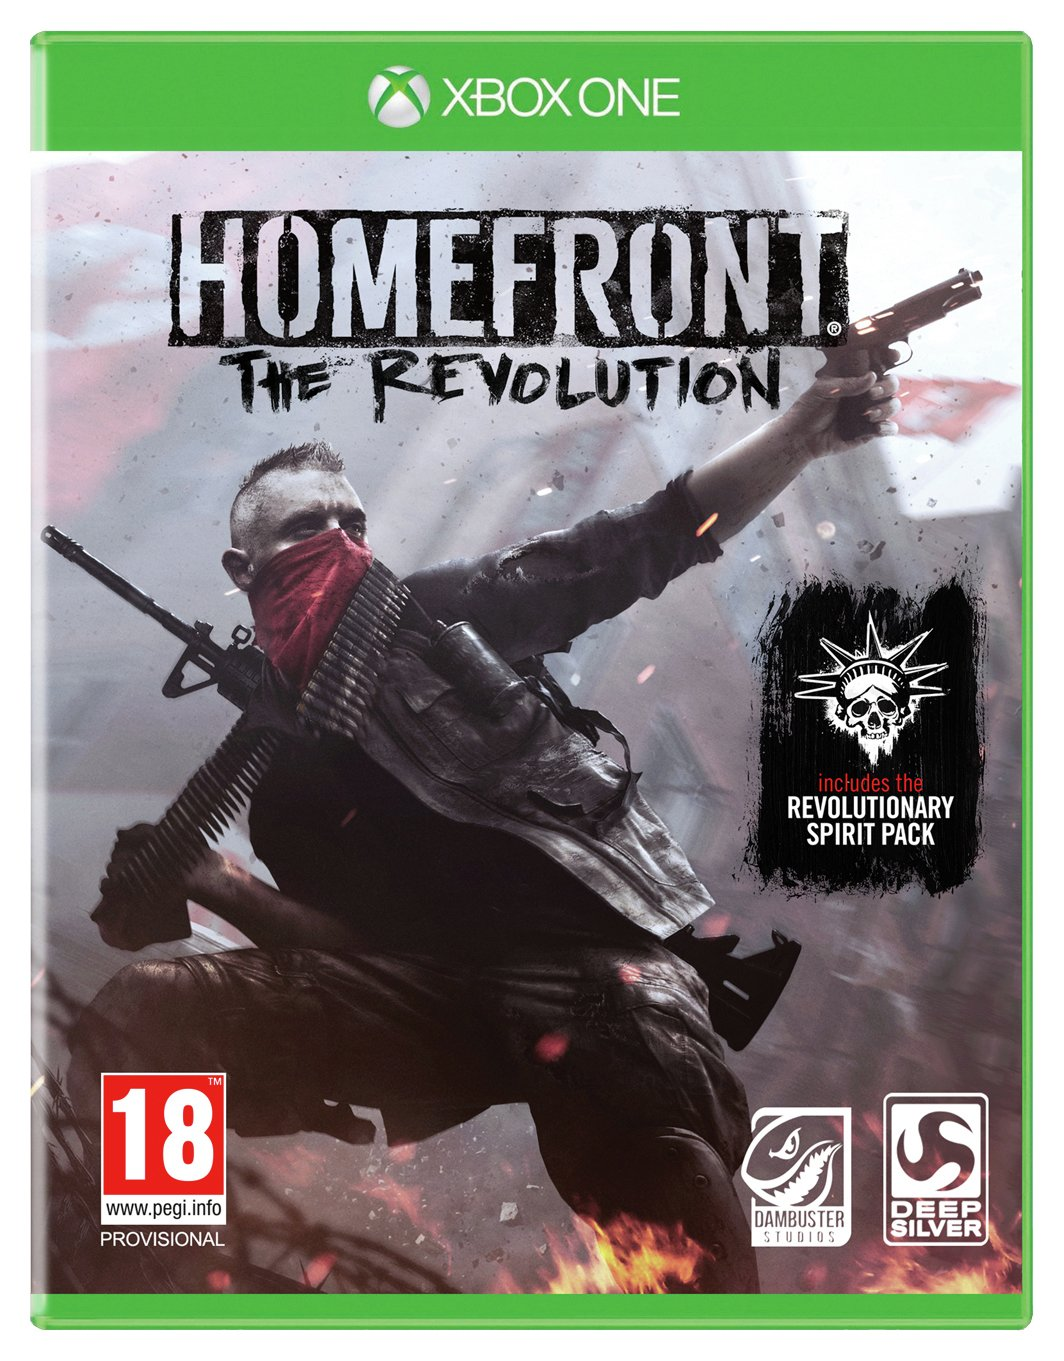 Homefront Homefront - The Revolution - Xbox - One Game.